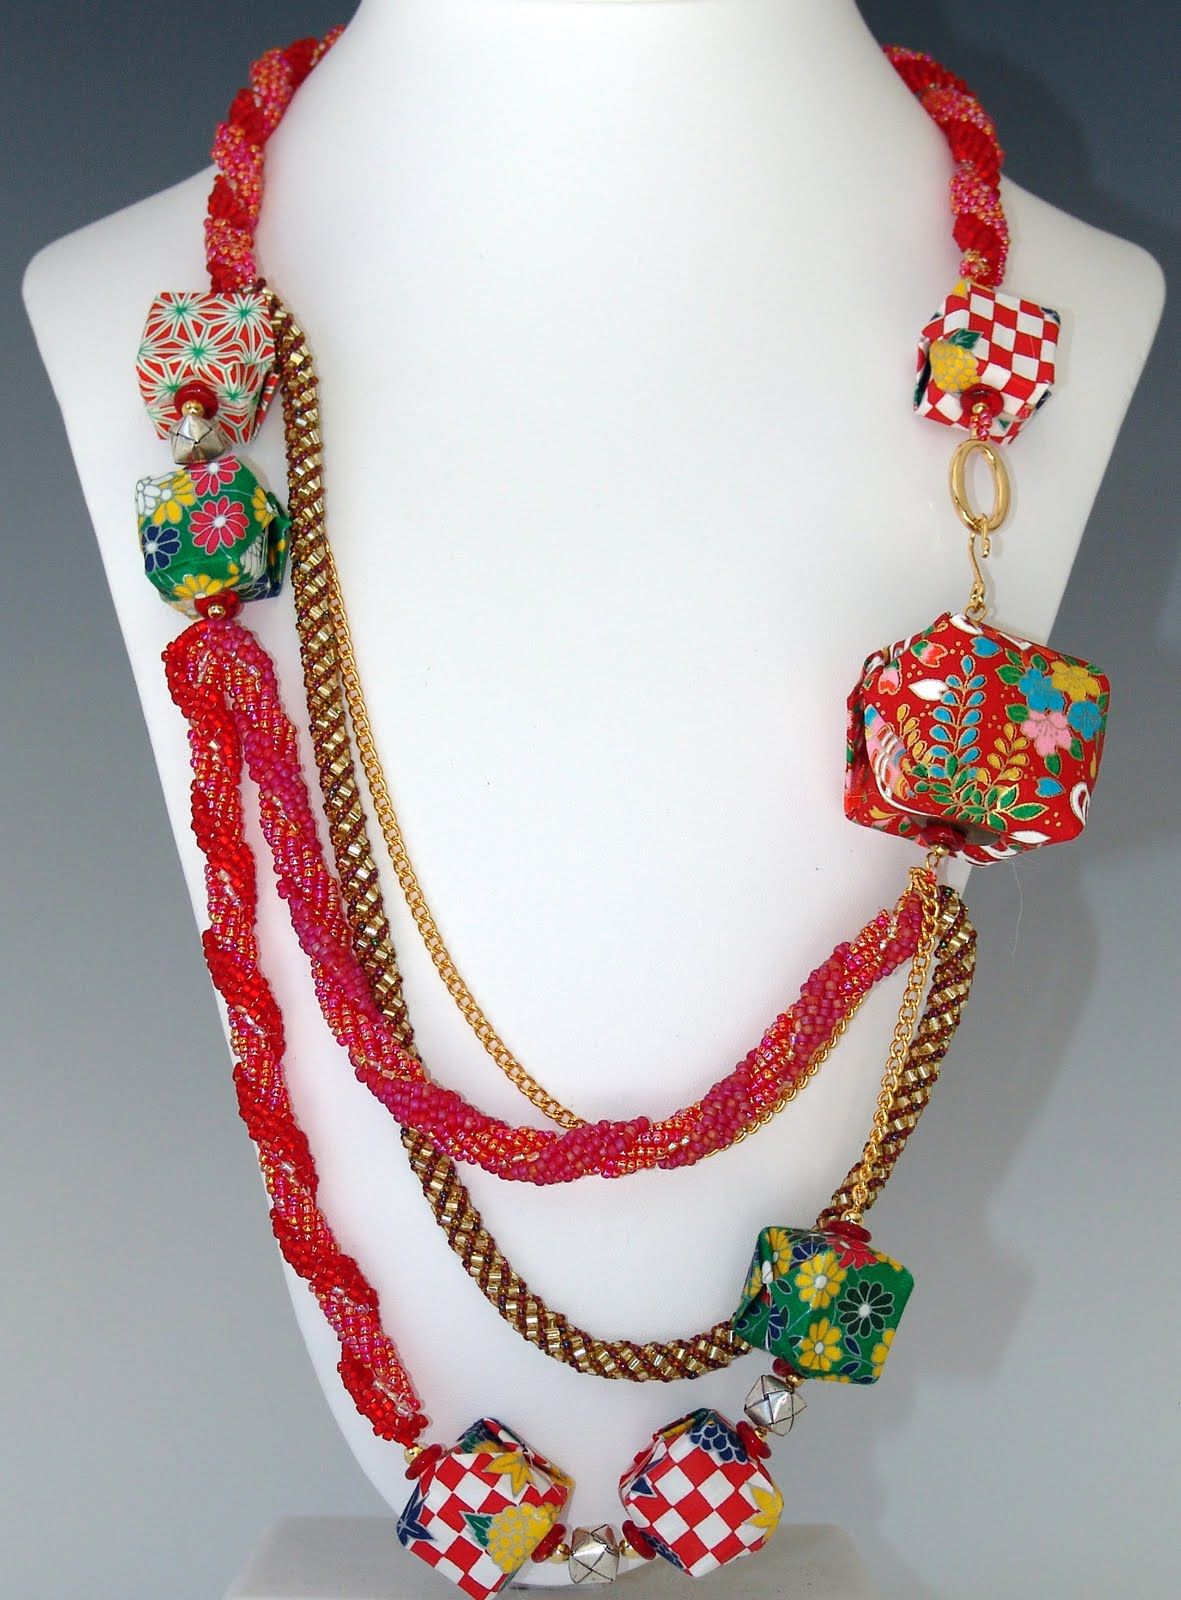 origami necklace, inspiration